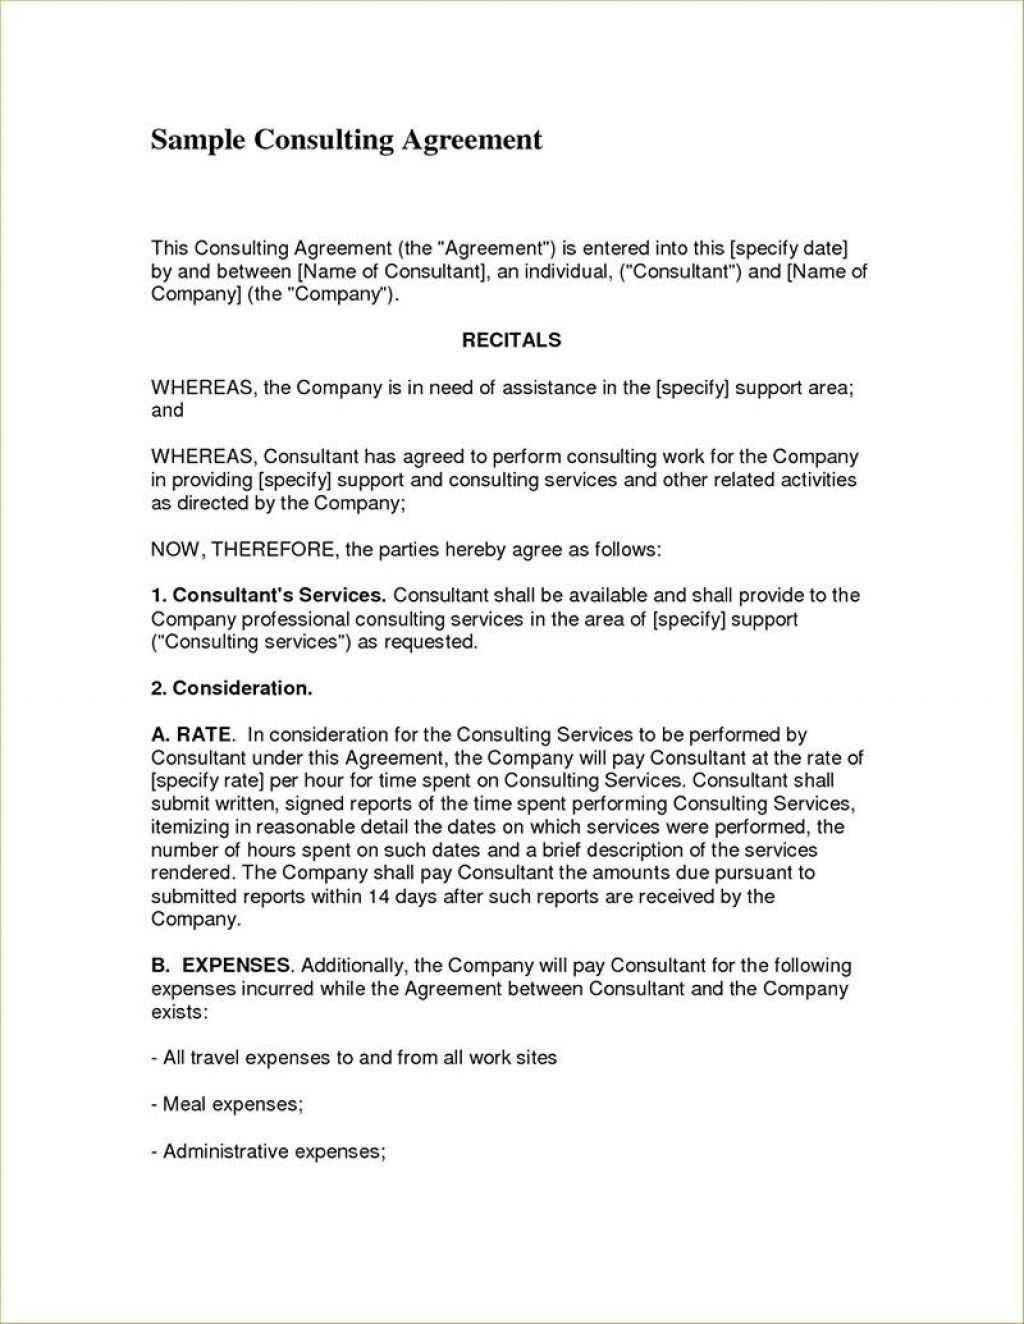 007 Dreaded Free Consulting Agreement Template Image  Word South Africa UkLarge